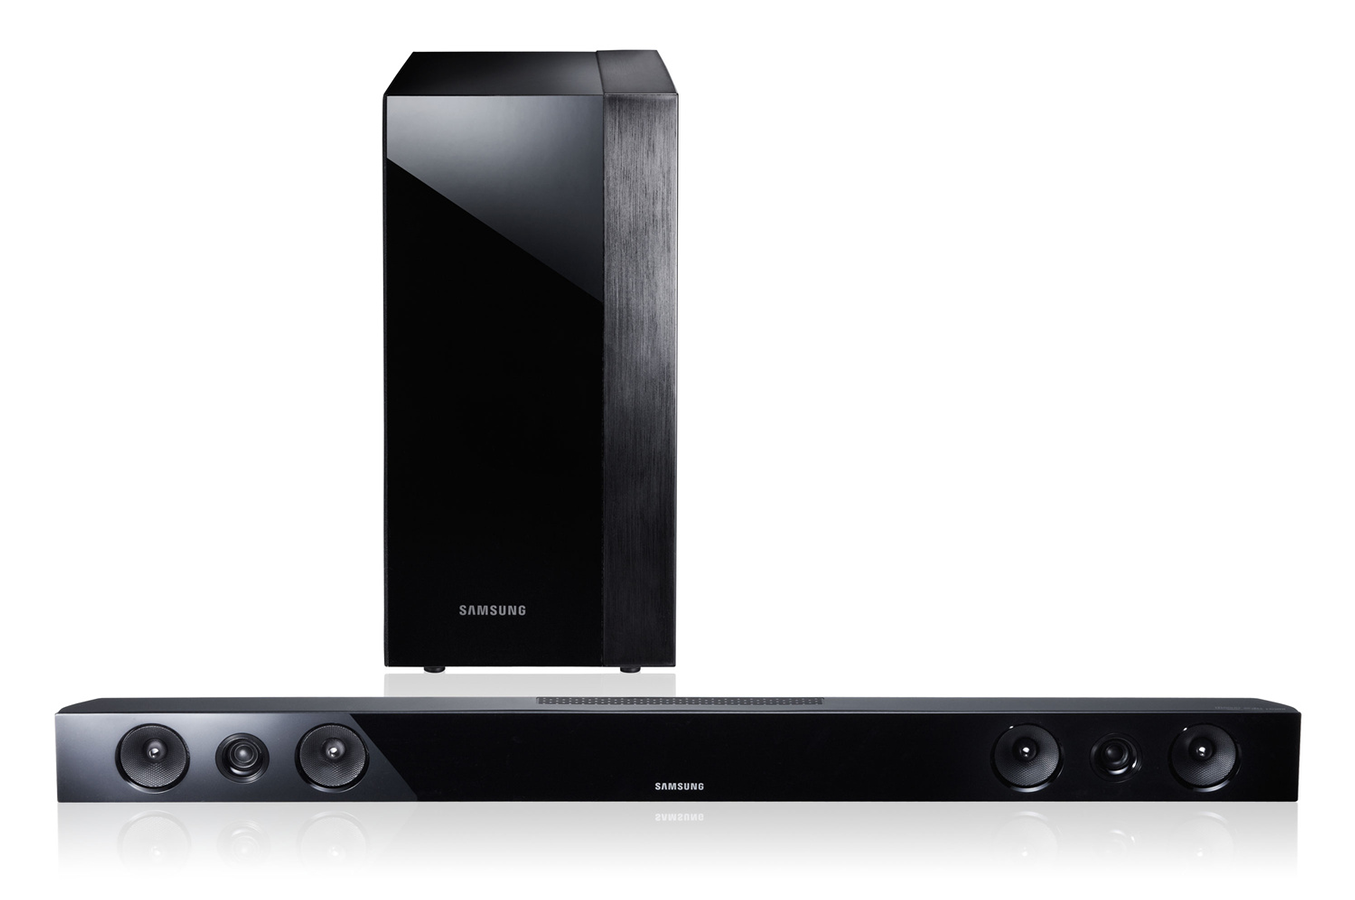 Barre de son samsung hwf450 3738221 darty - Barre de son ou home cinema ...